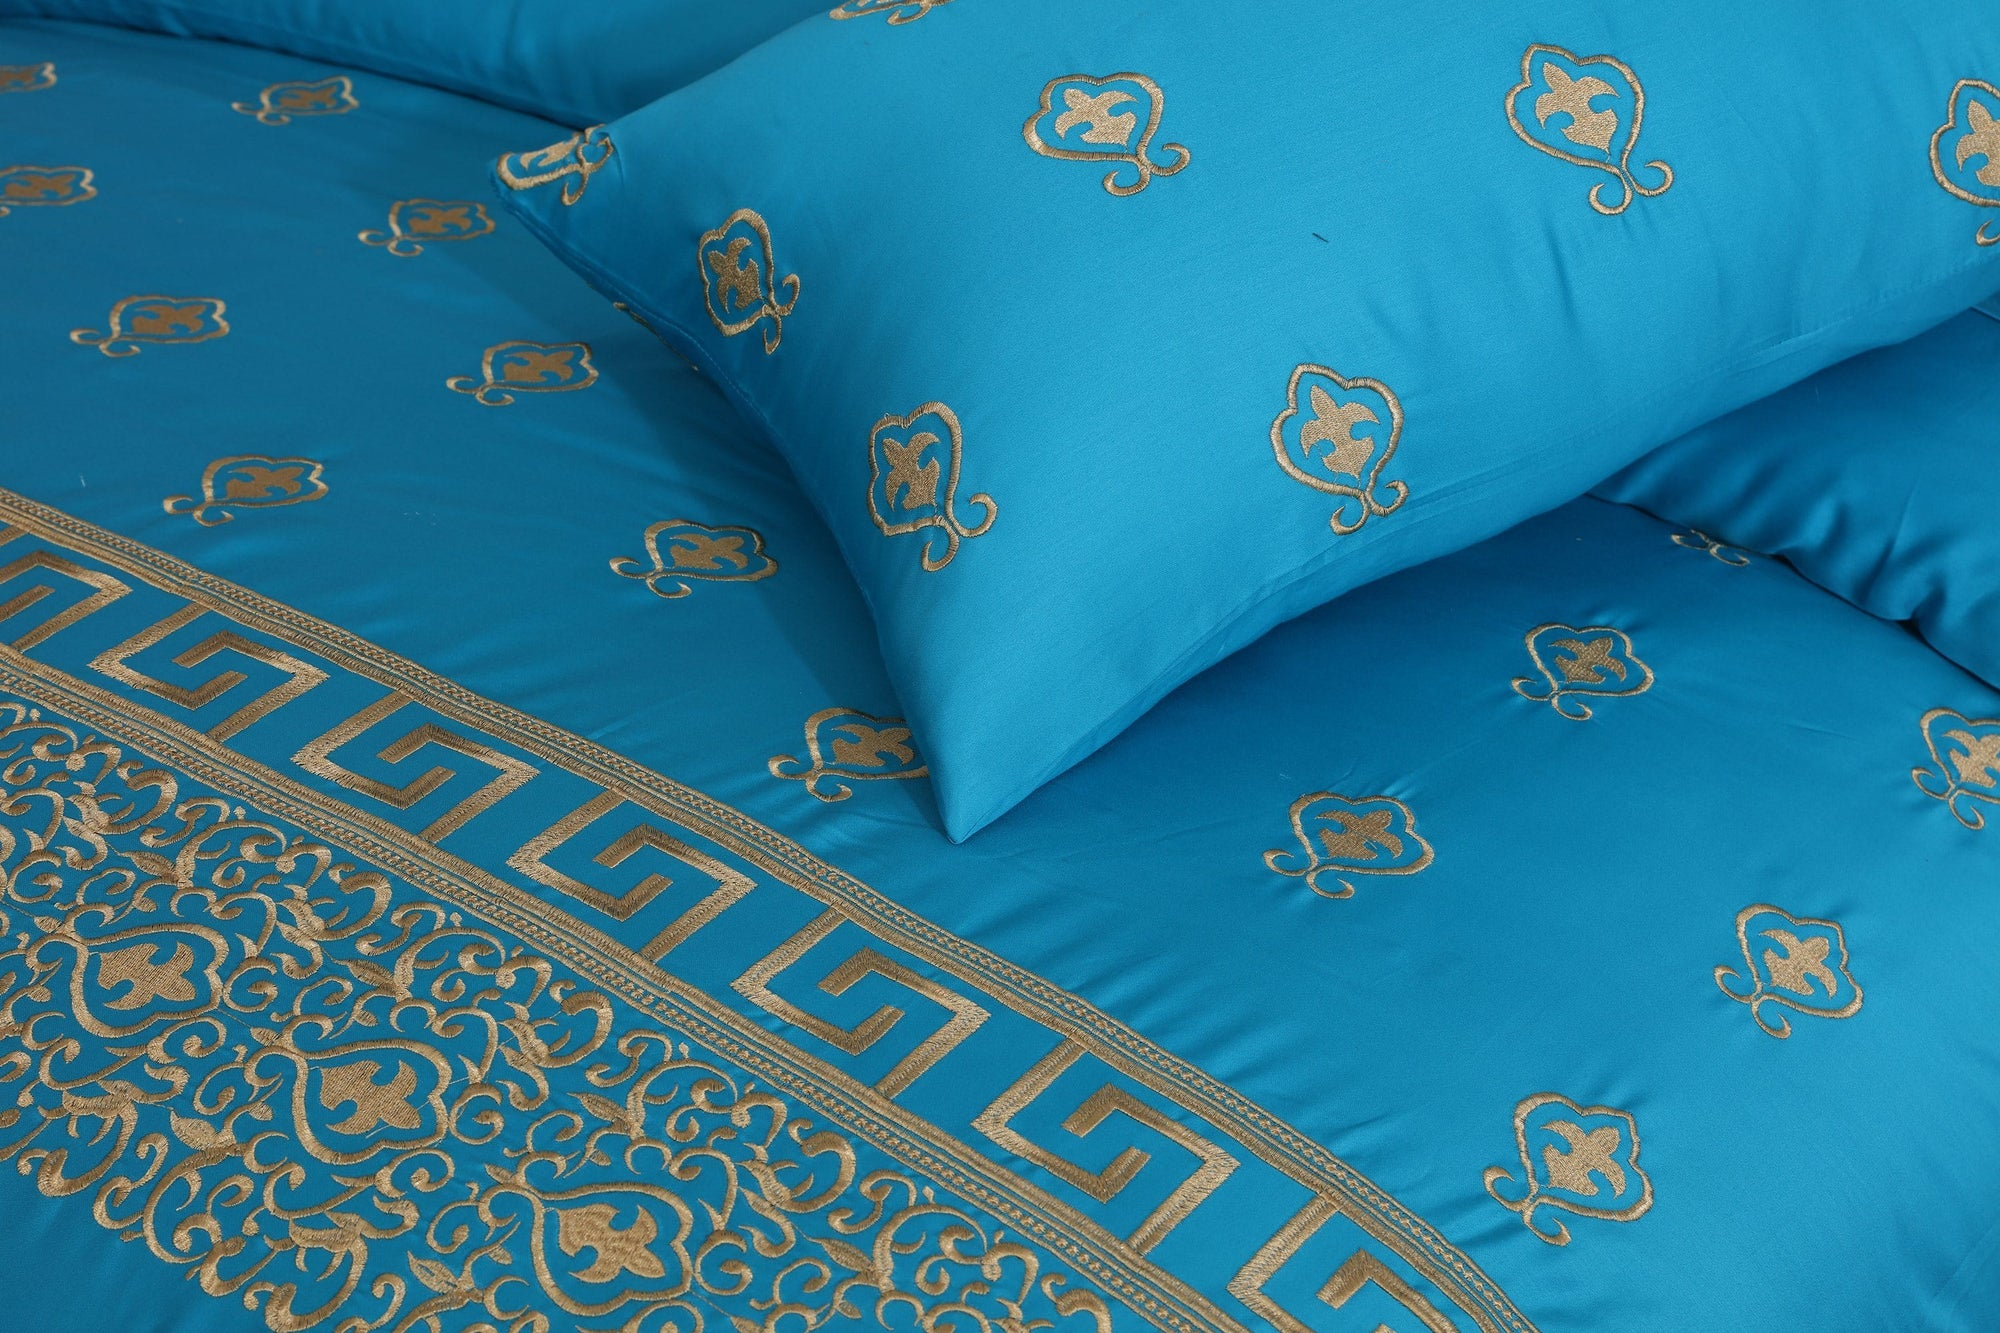 Grace Ultramarine D02 - 6PC Embroidered Luxury Sateen Duvet Cover Set King Size